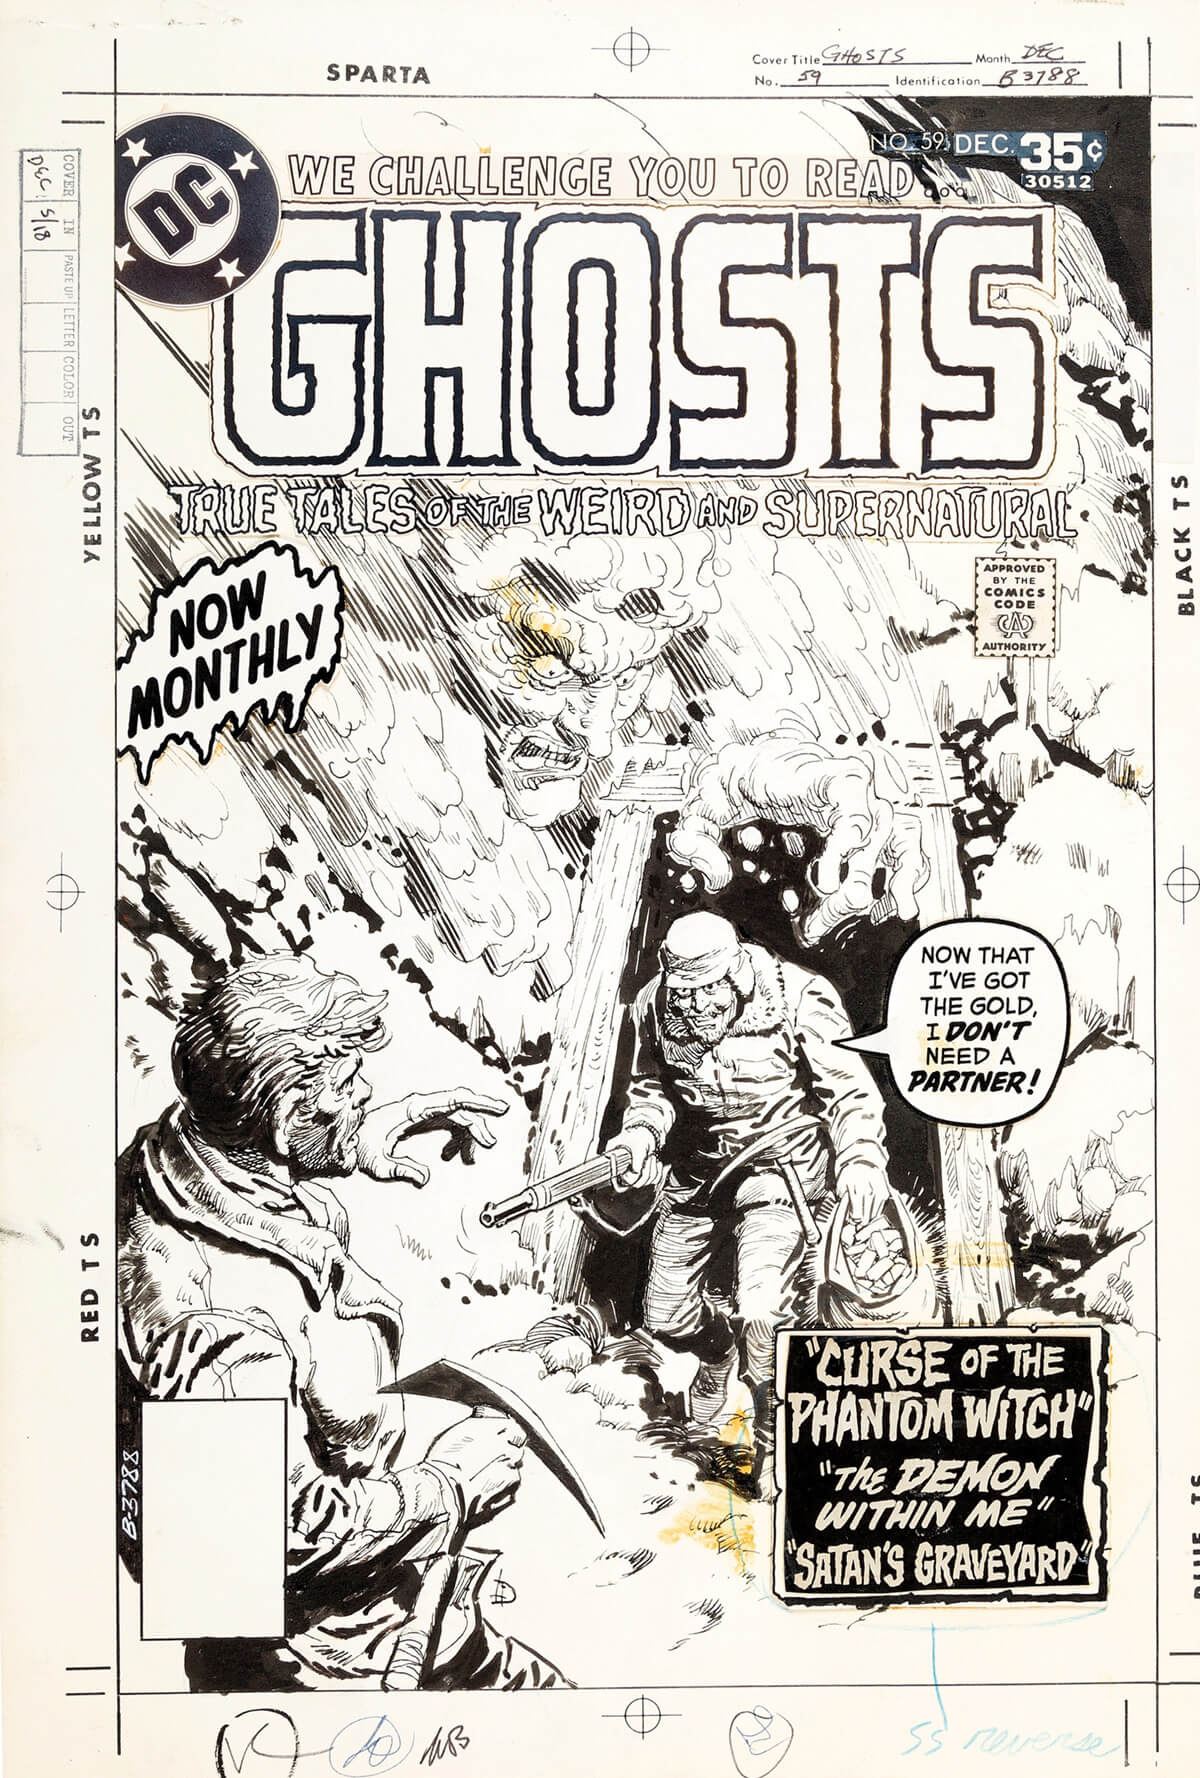 DC Ghosts 59 Cover by Luis Dominguez